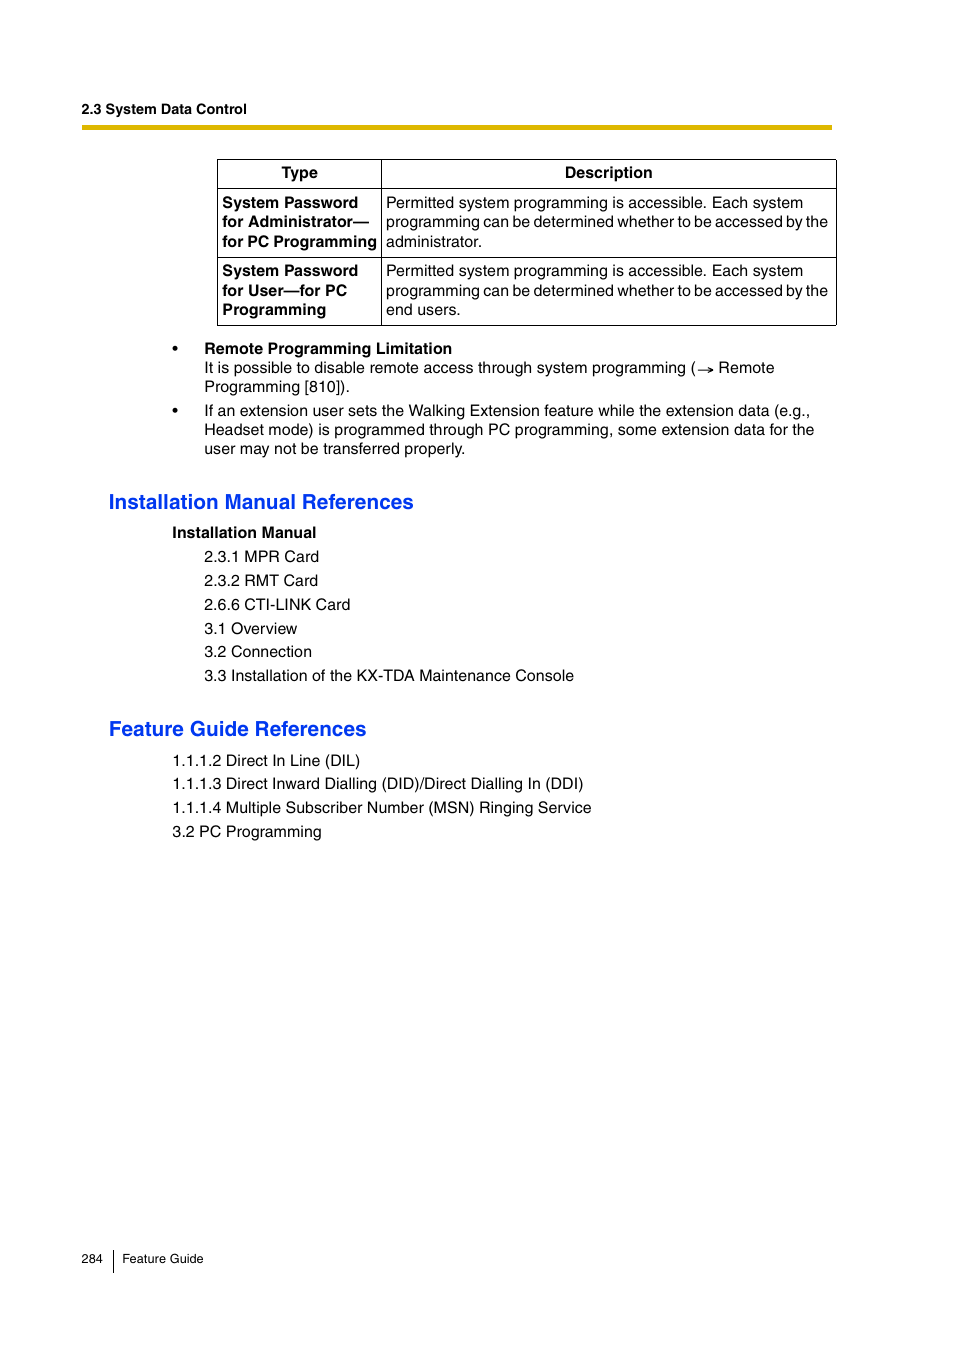 Installation manual references, Feature guide references | Panasonic HYBRID  IP-PBX KX-TDA200 User Manual | Page 284 / 358